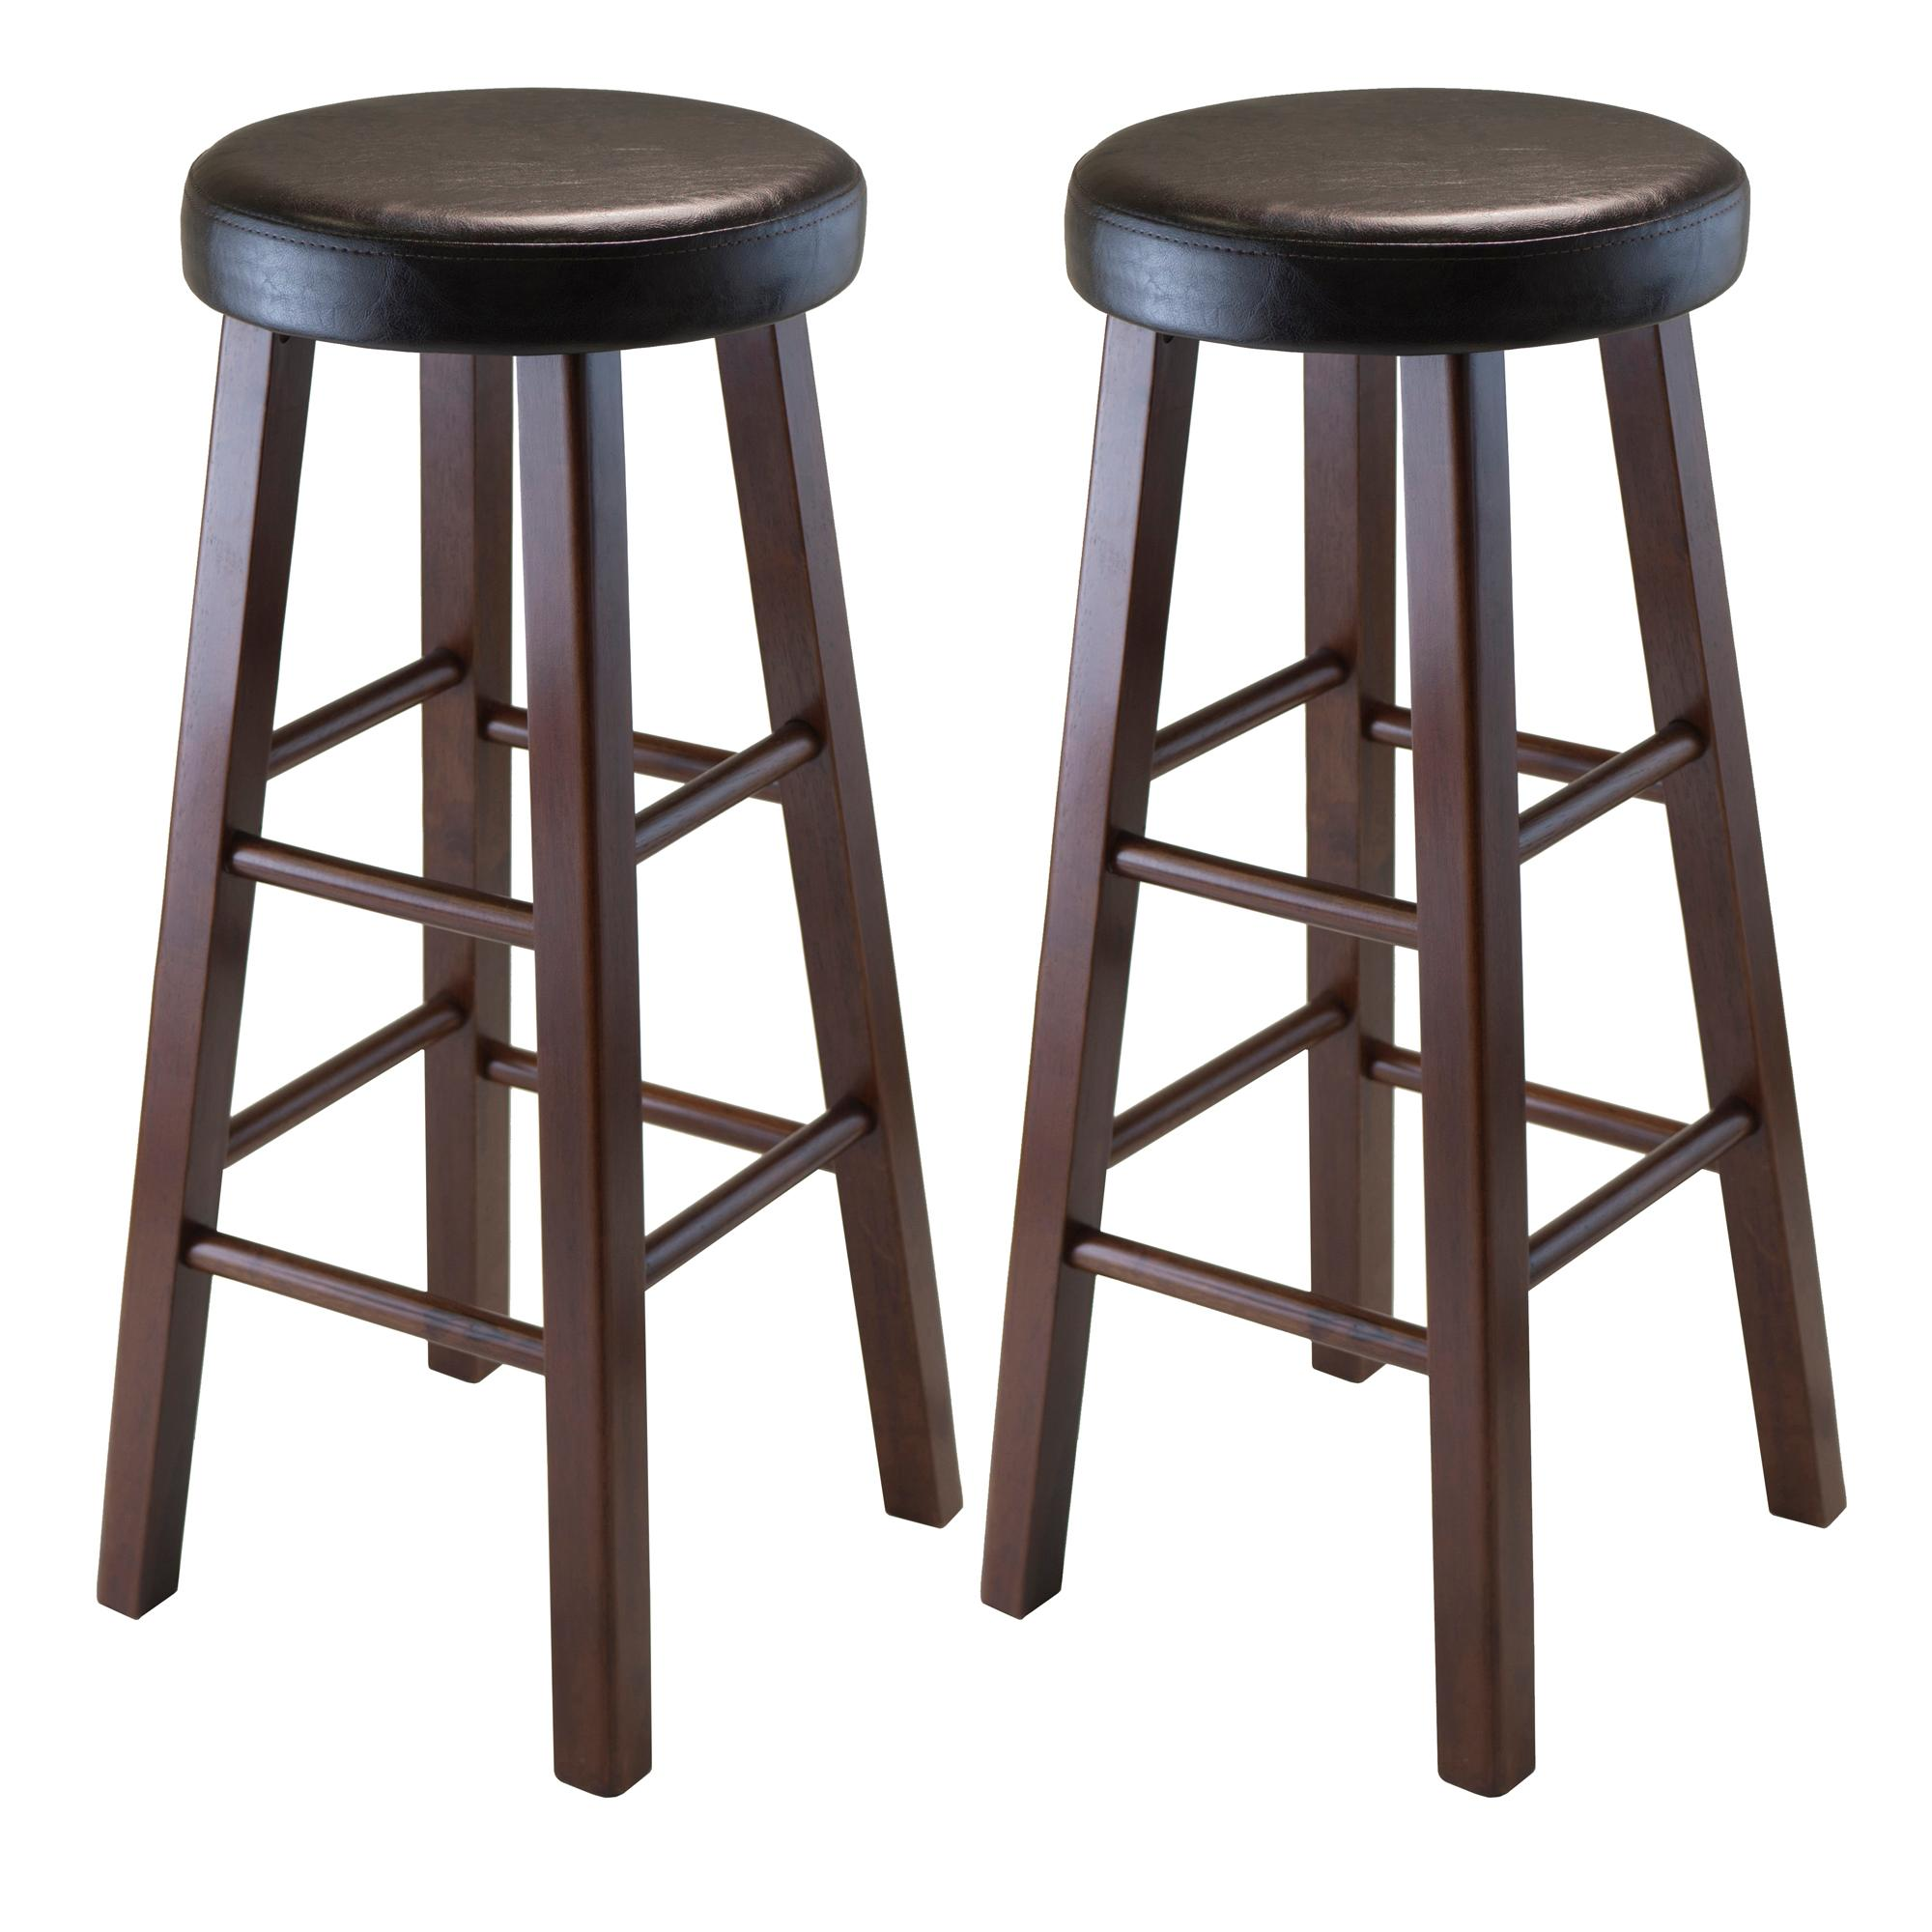 Amazoncom Winsome Wood Marta Assembled Round Bar Stool  : c481a1ae a2dc 433c 8c66 4d06aad045a1jpgCB526501945 from www.amazon.com size 2000 x 2000 jpeg 186kB